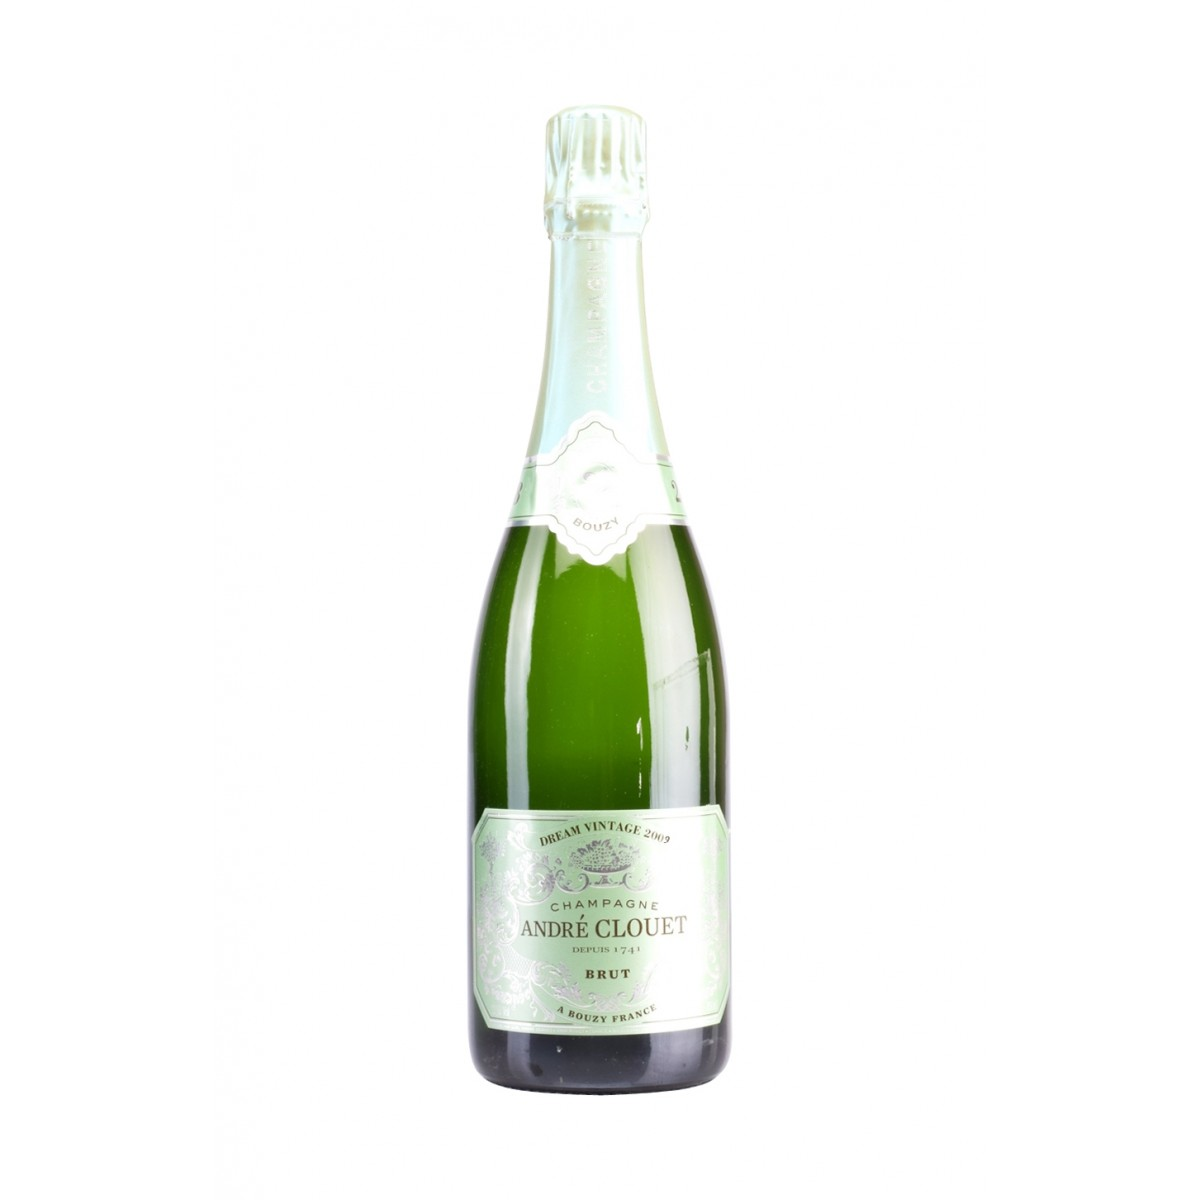 Champagne Dream Vintage Grand Cru Brut Millesime 2009 - Andrè Clouet